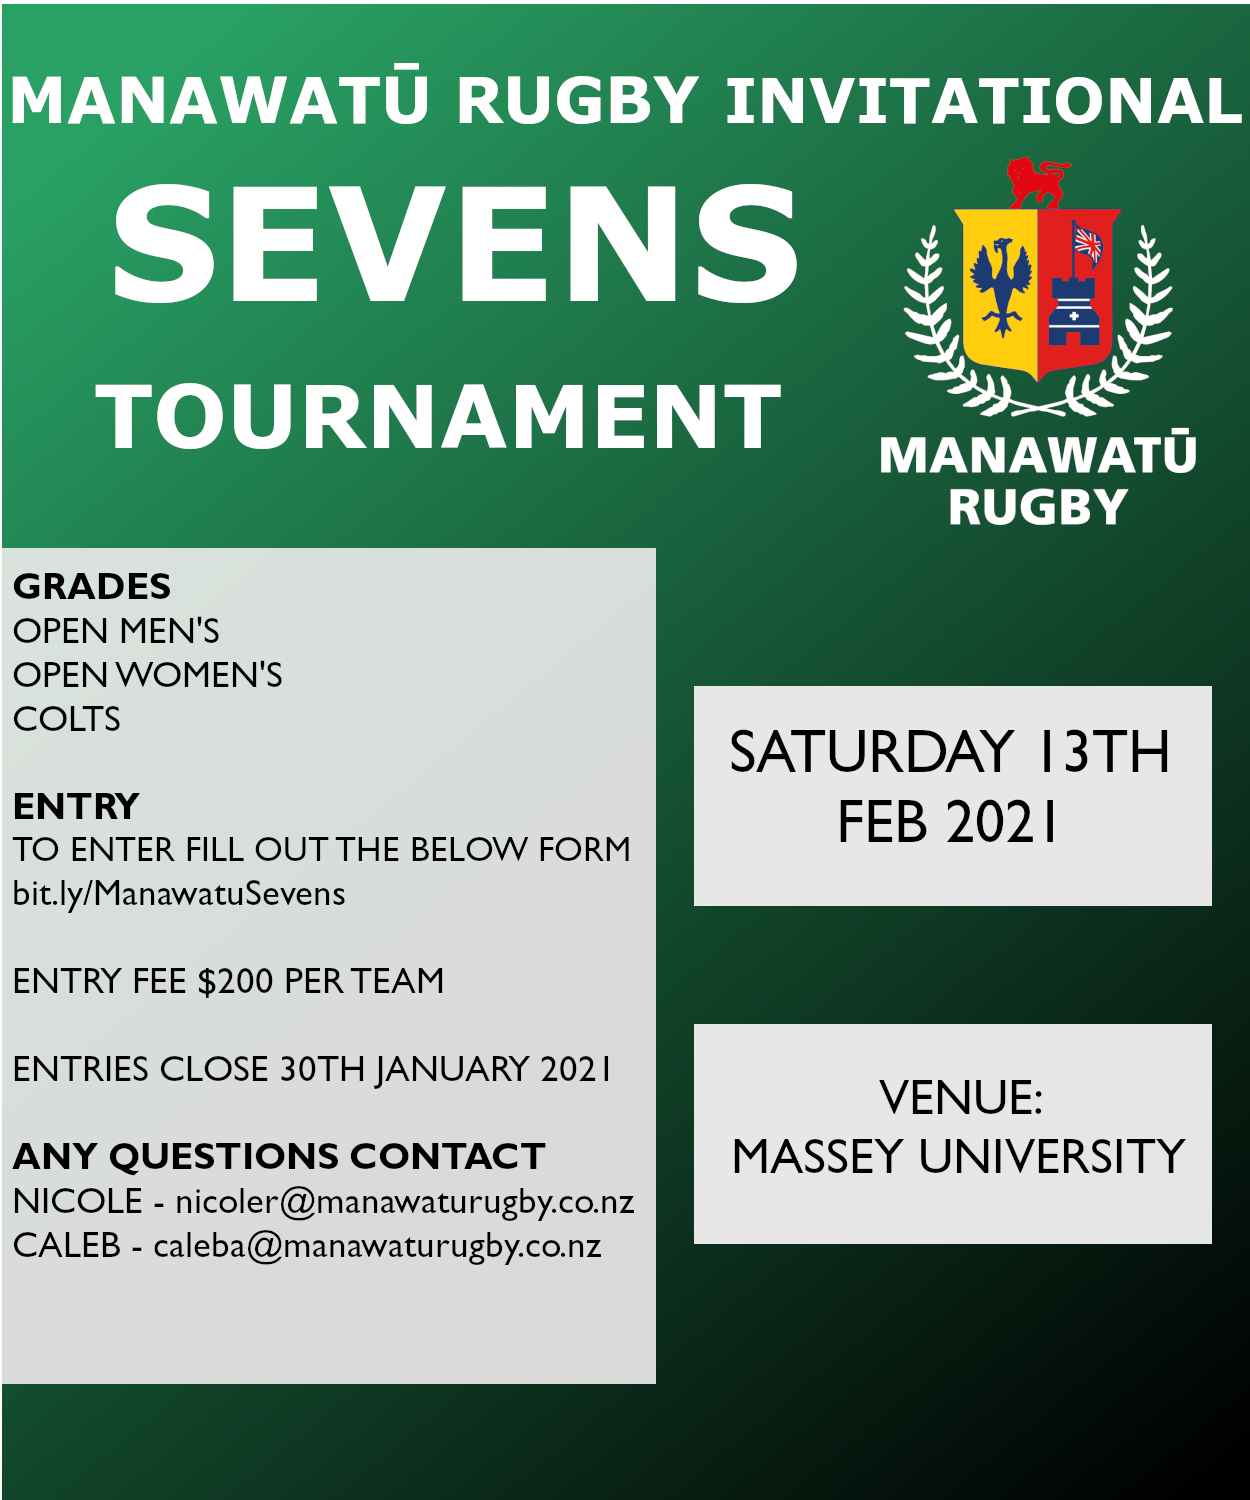 Manawatu Rugby Invitational Sevens Tournament 2021